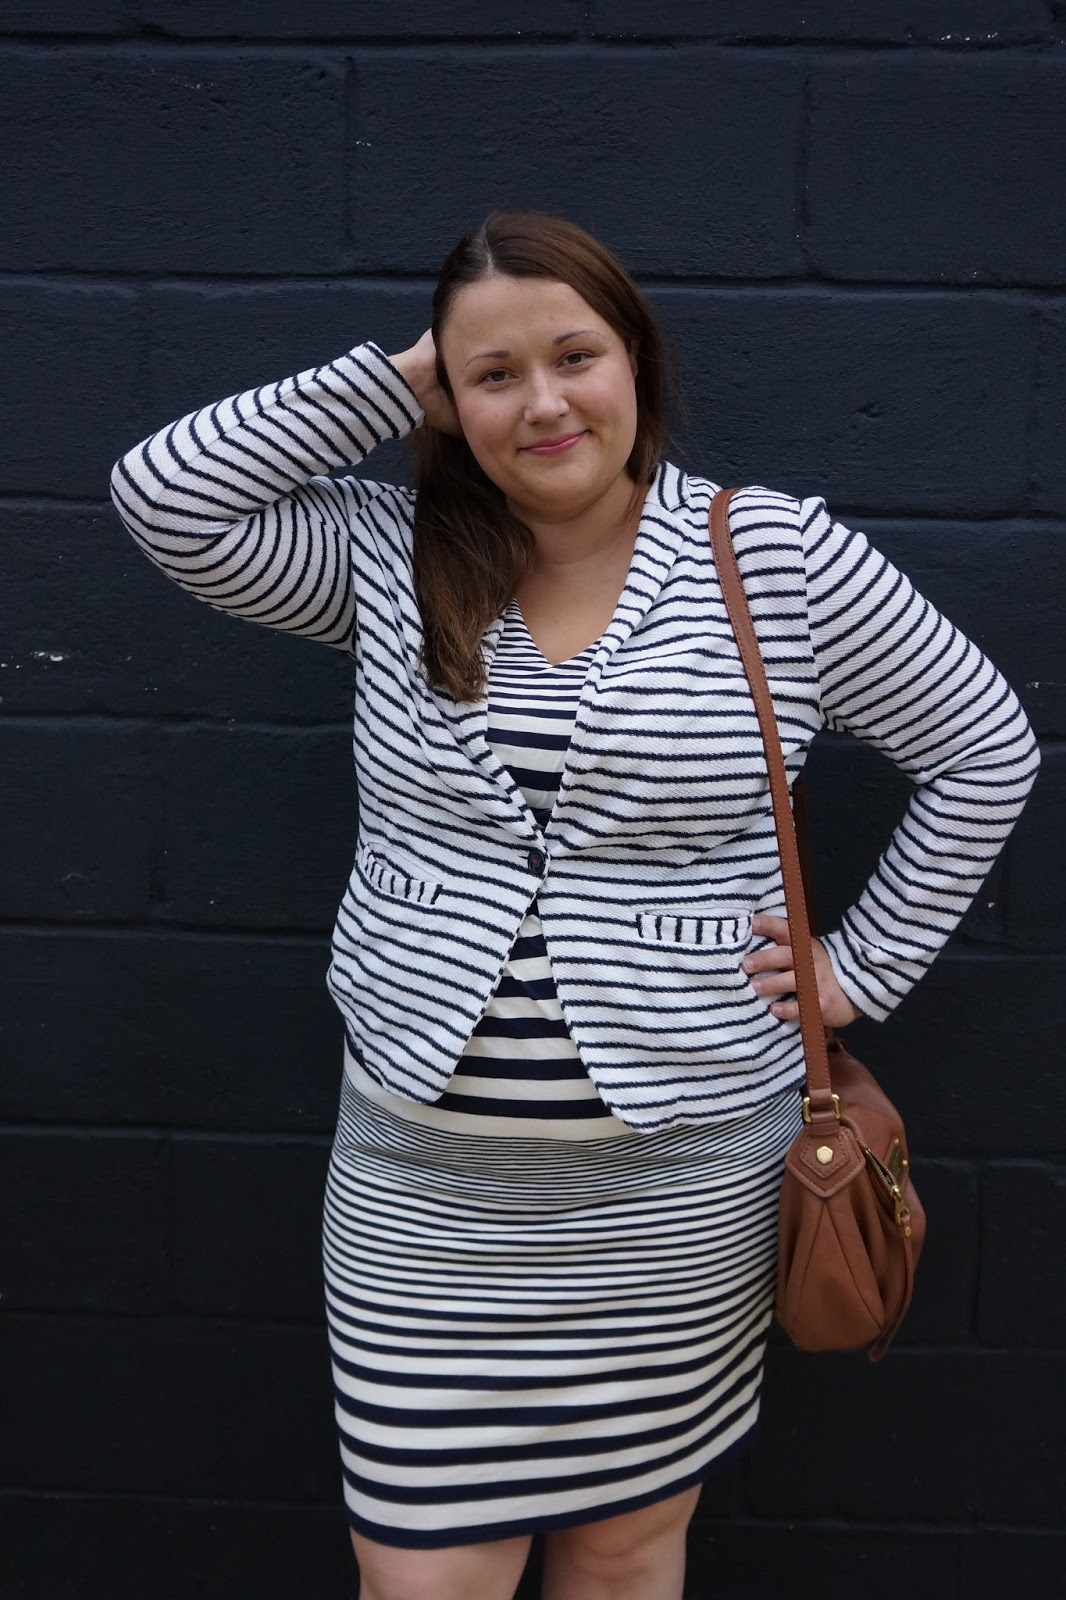 outfit picture with striped jersey blazer and striped dress